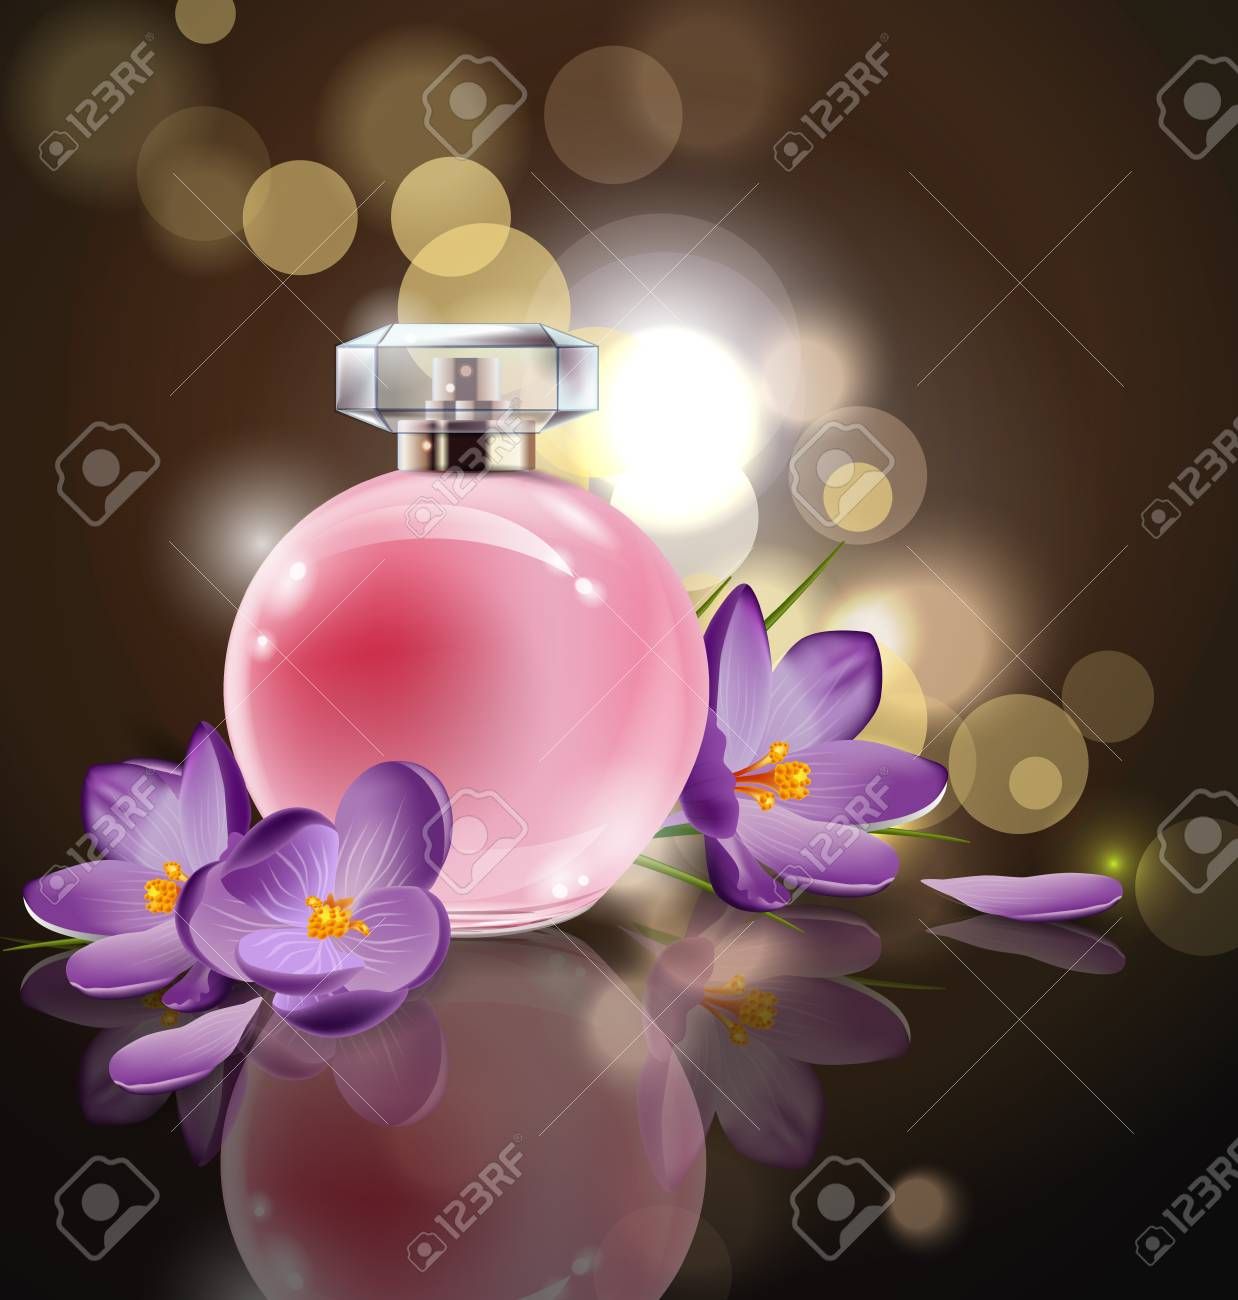 Pink Bottle Womens Perfume With Spring Flowers Crocuses On Blurred